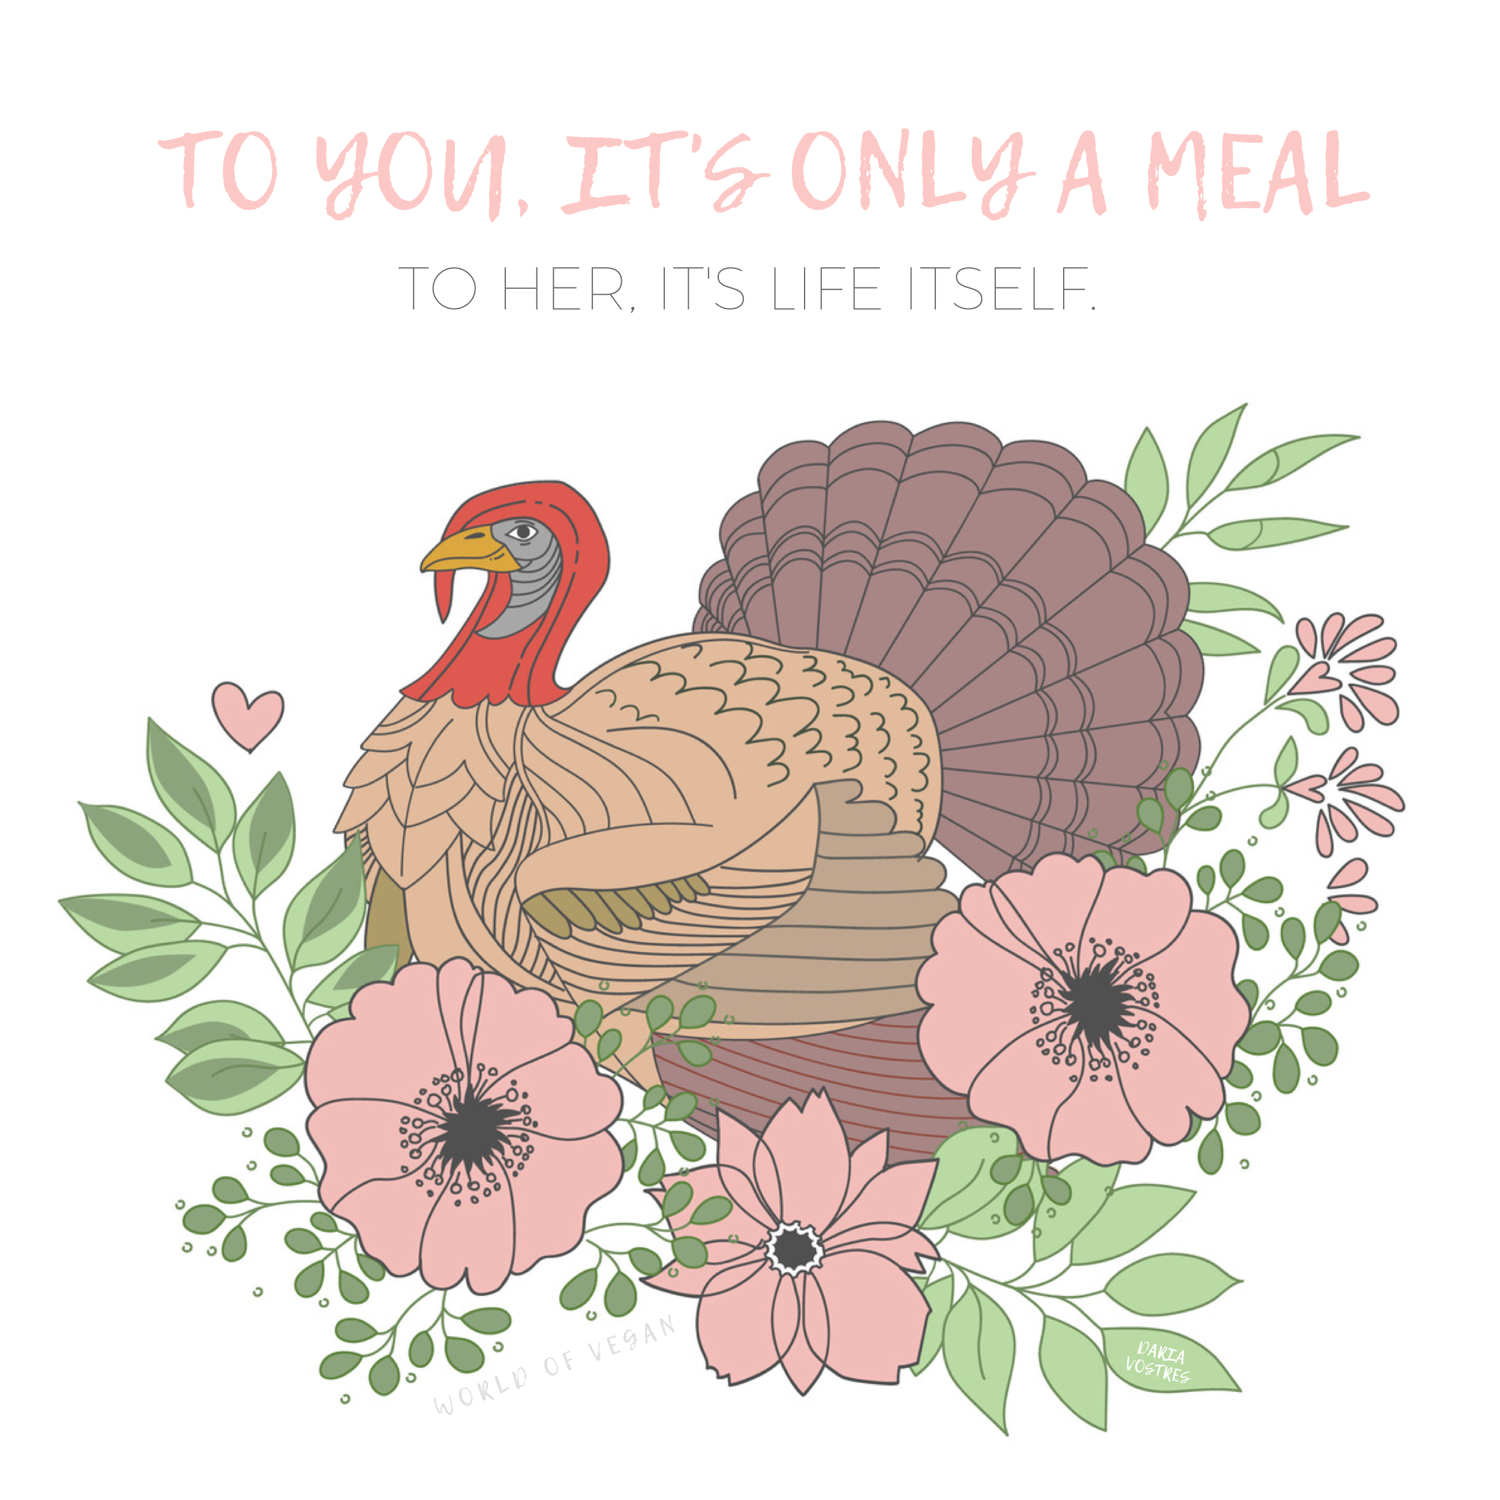 Celebrate A Vegan Thanksgiving | Turkey Artwork by Daria Vostres